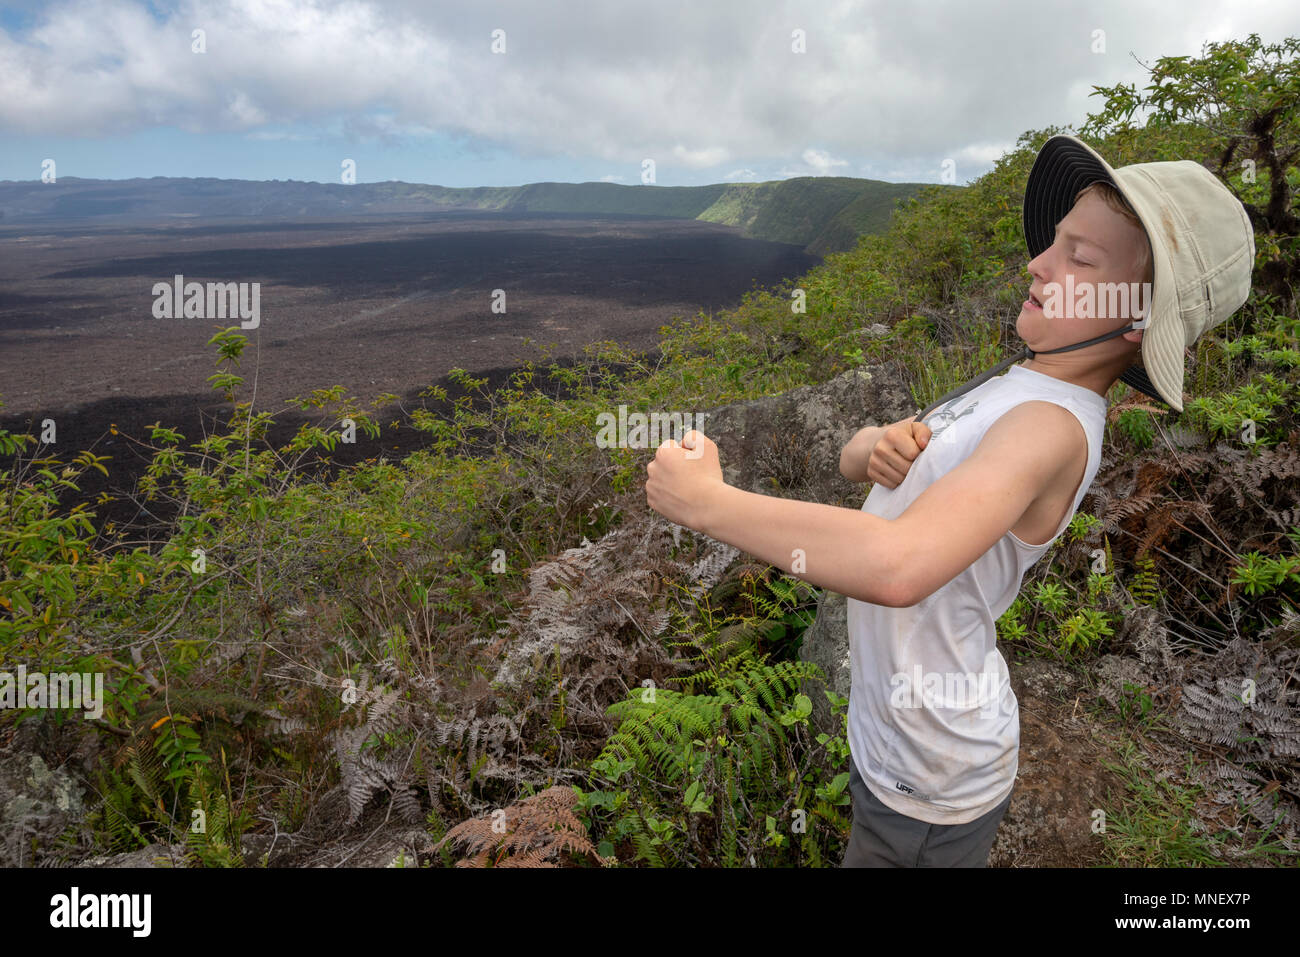 Boy playfully beating his chest on the rim of Sierra Negra Volcano, Galapagos Islands, Ecuador. - Stock Image